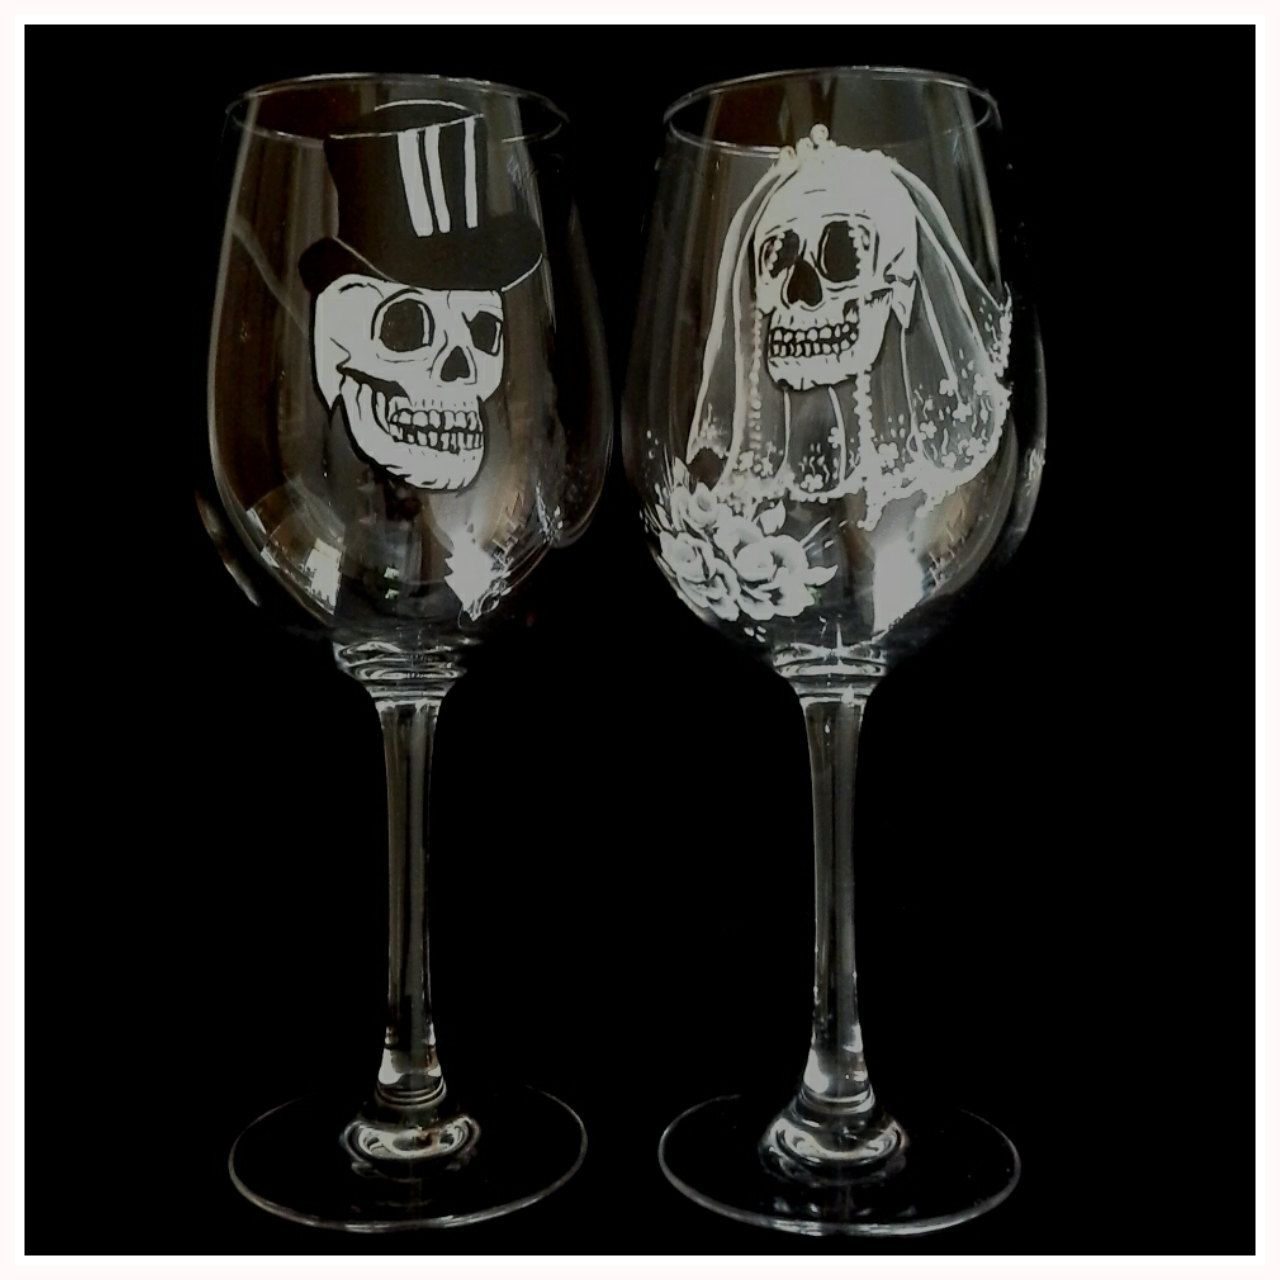 Hand painted wedding glasses, hand painted wine glasses